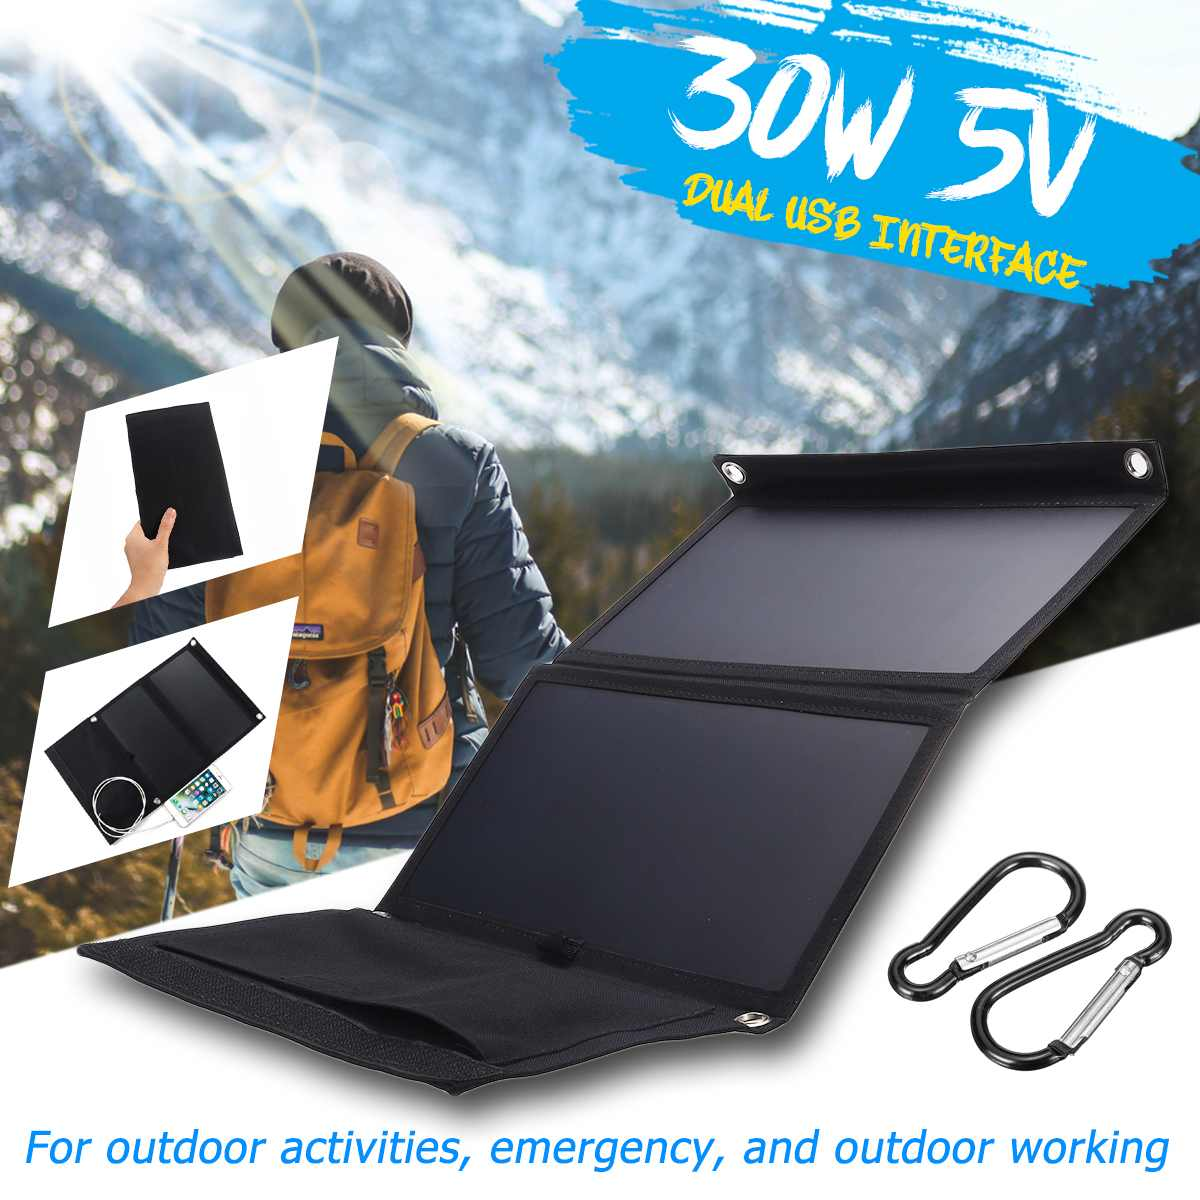 Hot Sales Sunpower 30W 5V Foldable Solar Panel Charger Solar Power Bank Dual USB Camouflage Backpack Camping Hiking For Phone